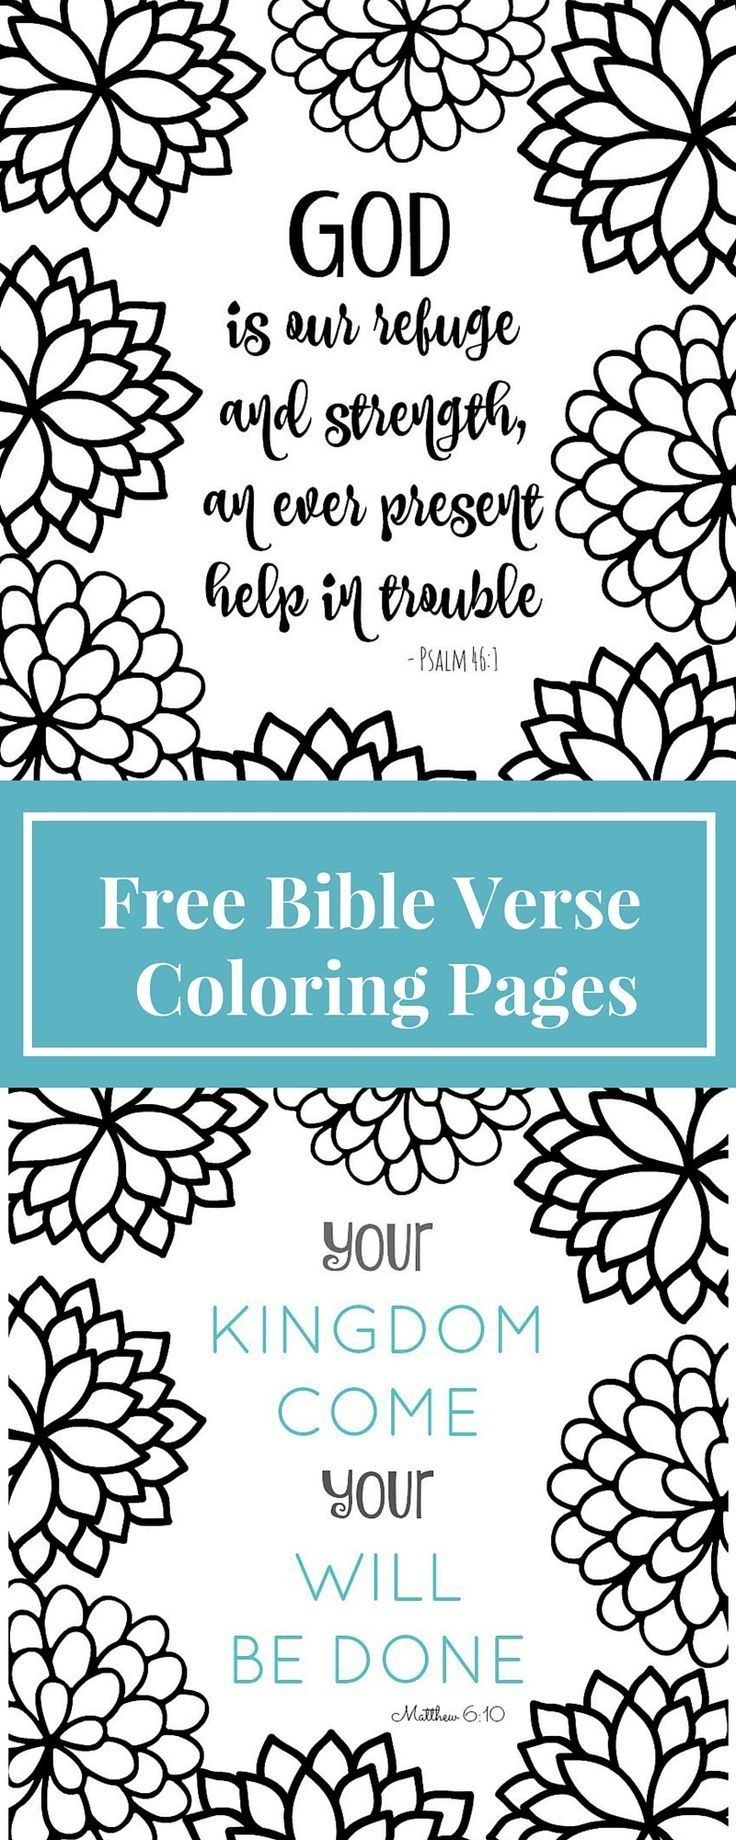 christian coloring pages with scripture Download-Coloring pages are for grown ups now These Bible verse coloring page printables 9-j